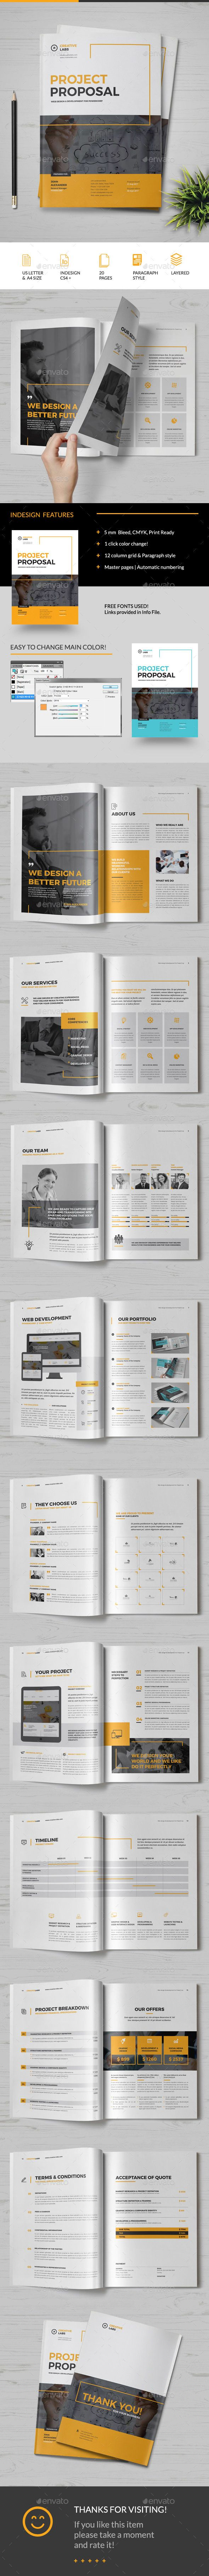 Proposal Template InDesign INDD - 20 Pages, A4 & US Letter Size